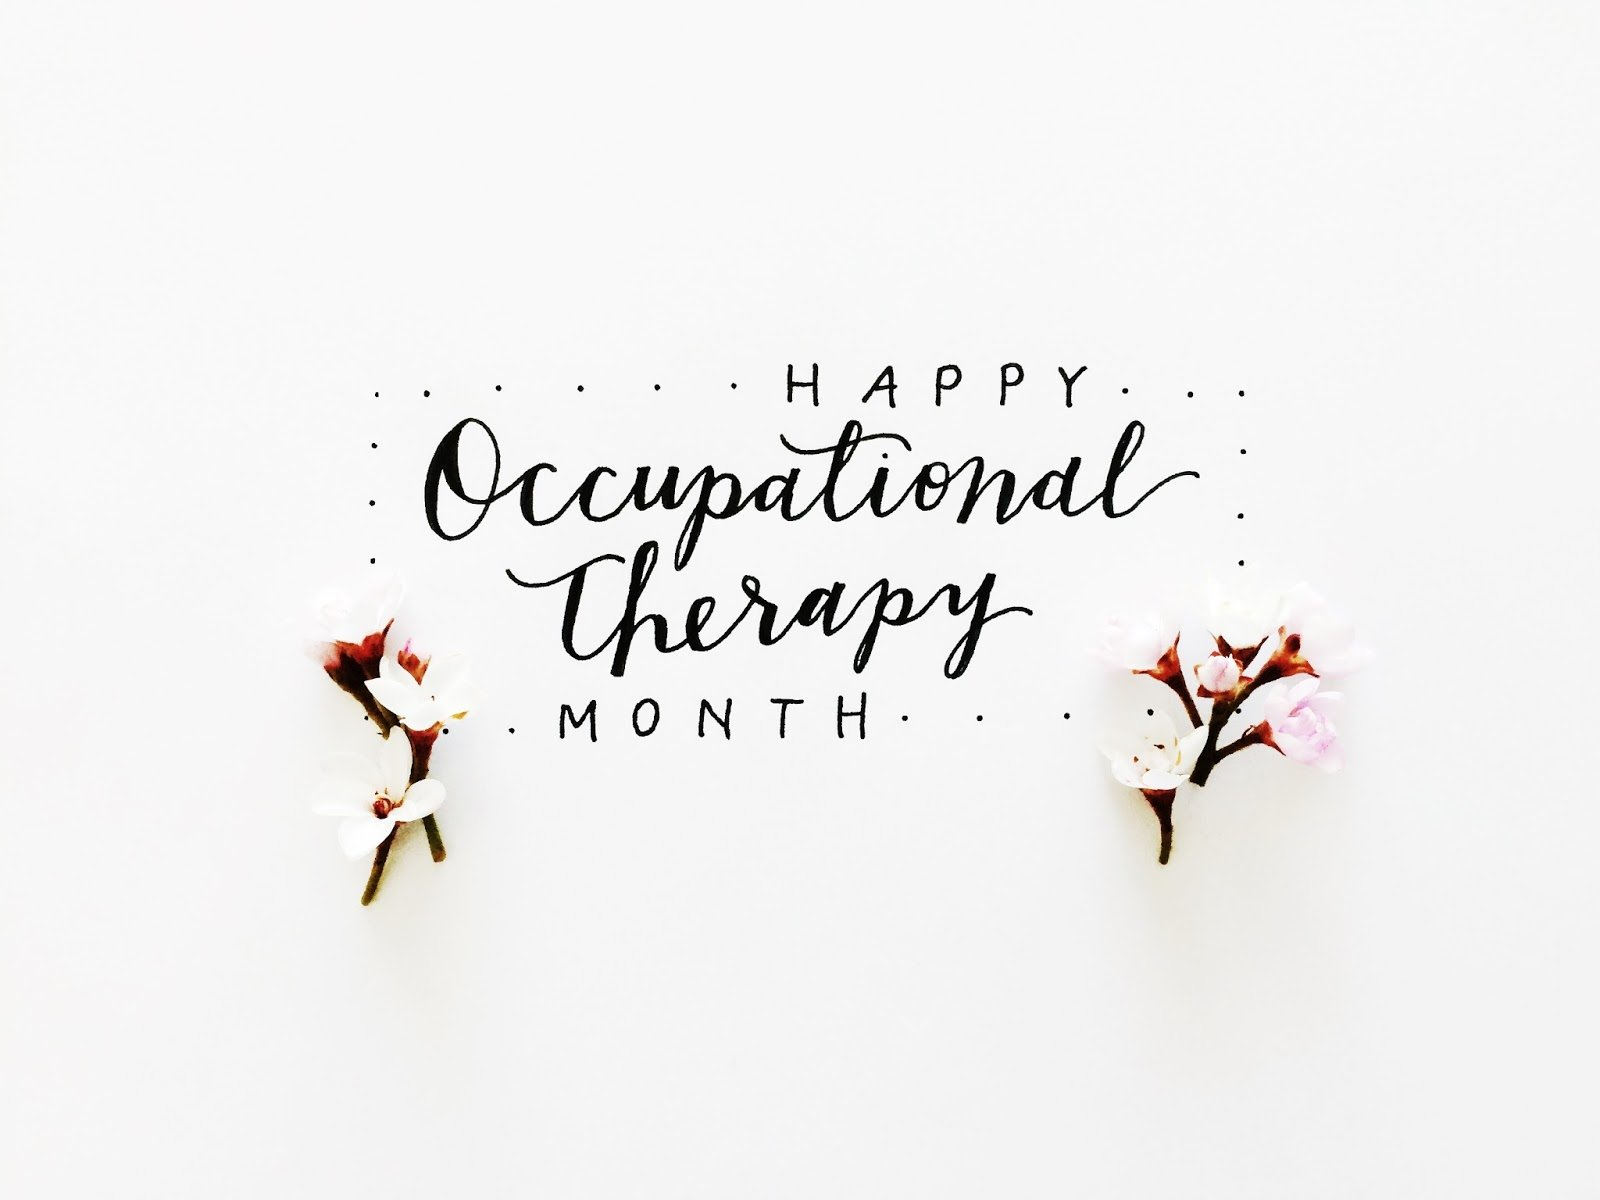 Happy National Occupational Therapy Month!